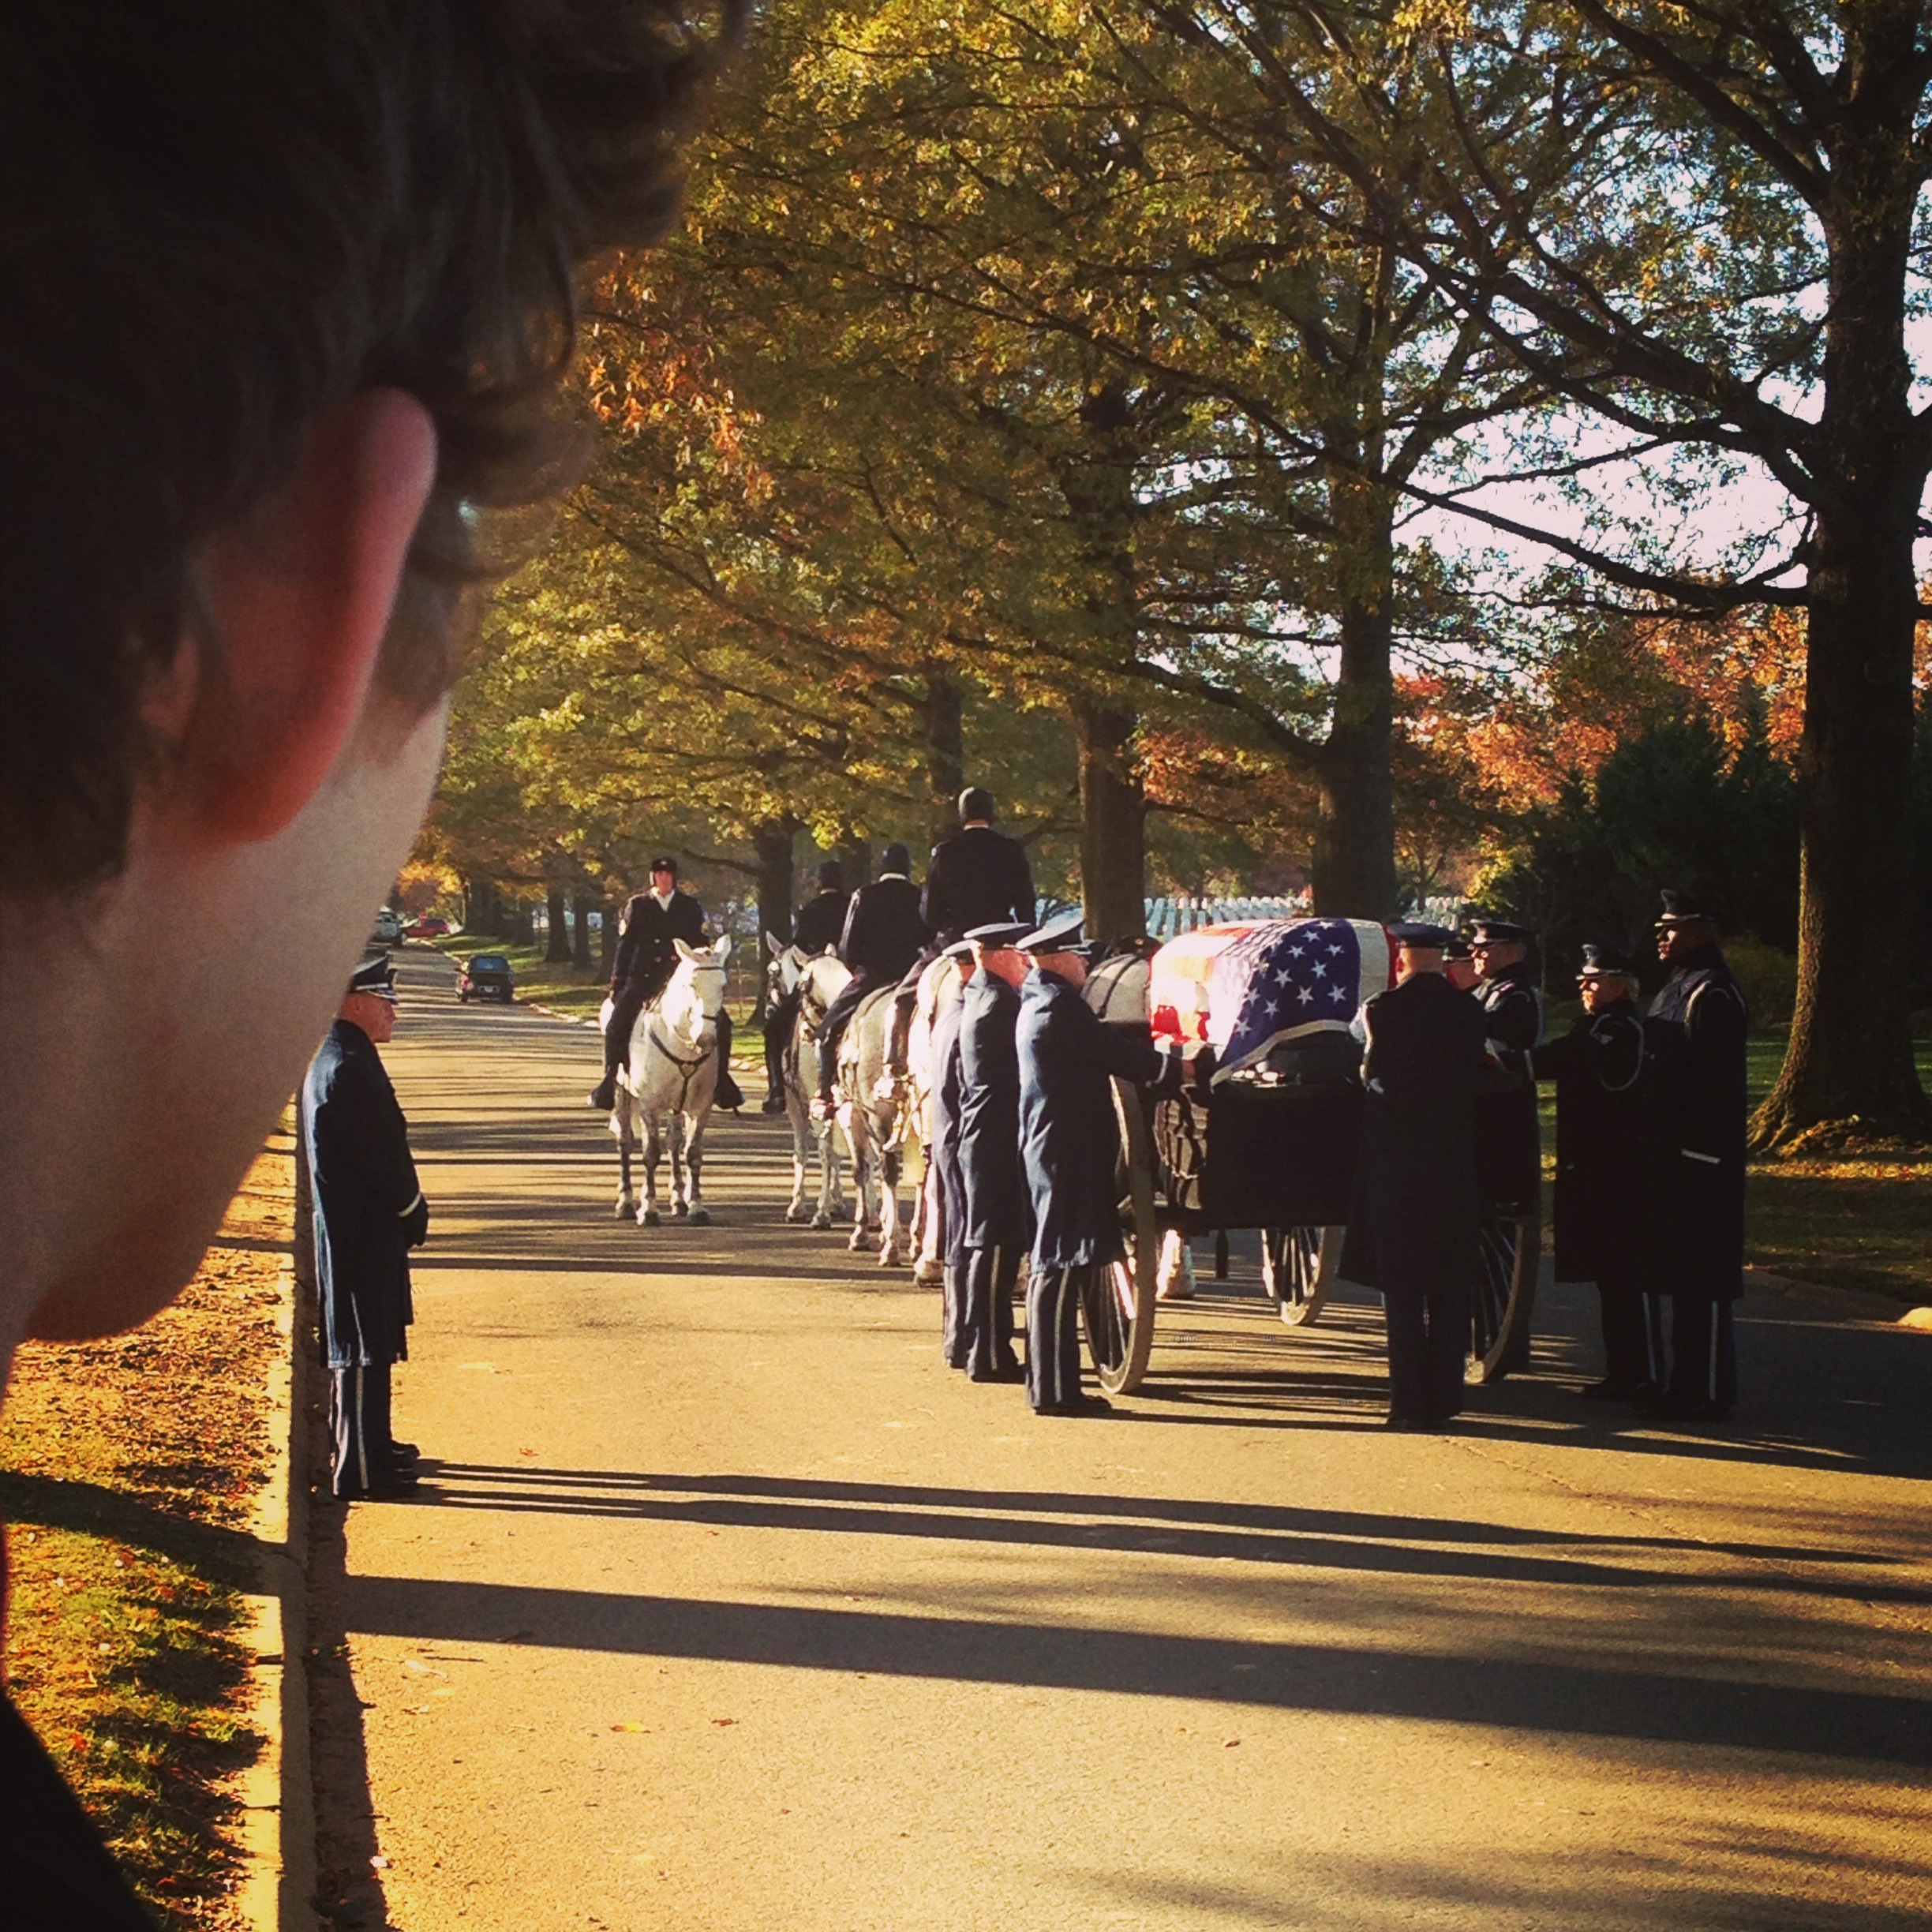 Michael watching during the procession as his Grandpa Bowman's funeral at Arlington National Cemetery. It was so special seeing him be honored as a veteran who fought during WWII and spent a career dedicated to serving our nation.